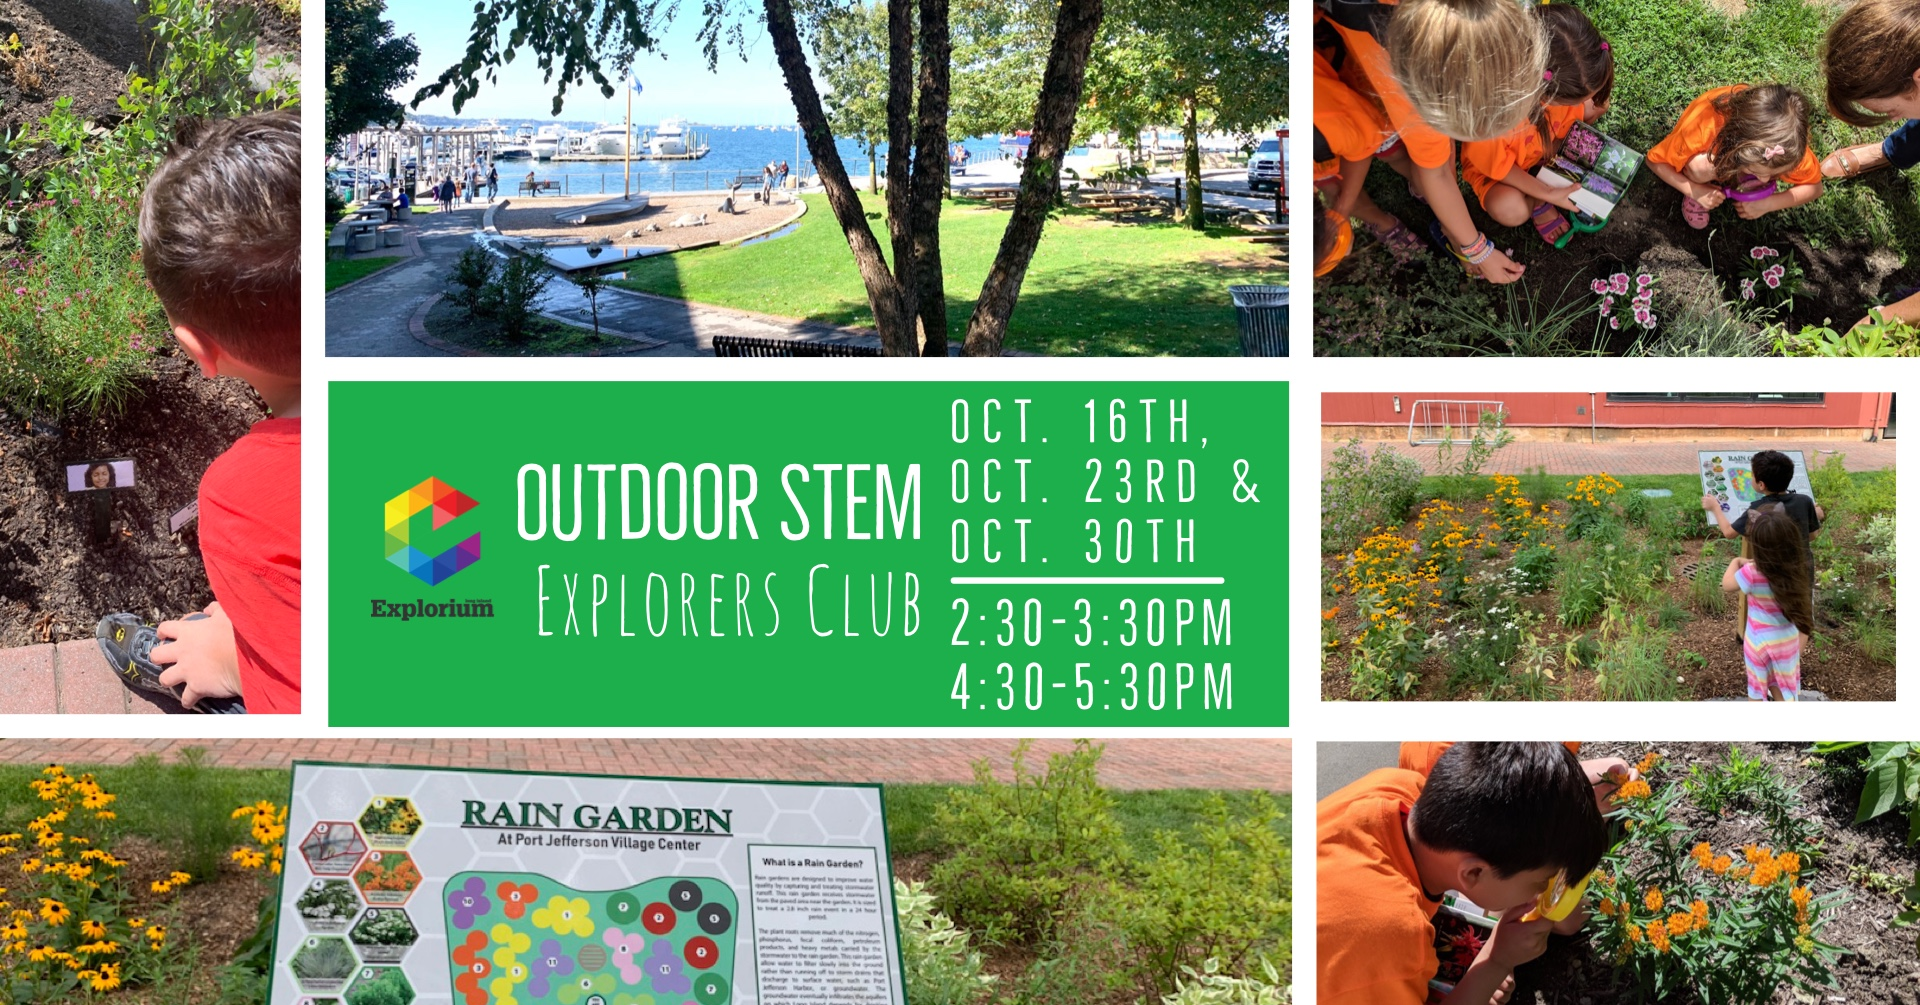 Outdoor stem club 2 - 230pm